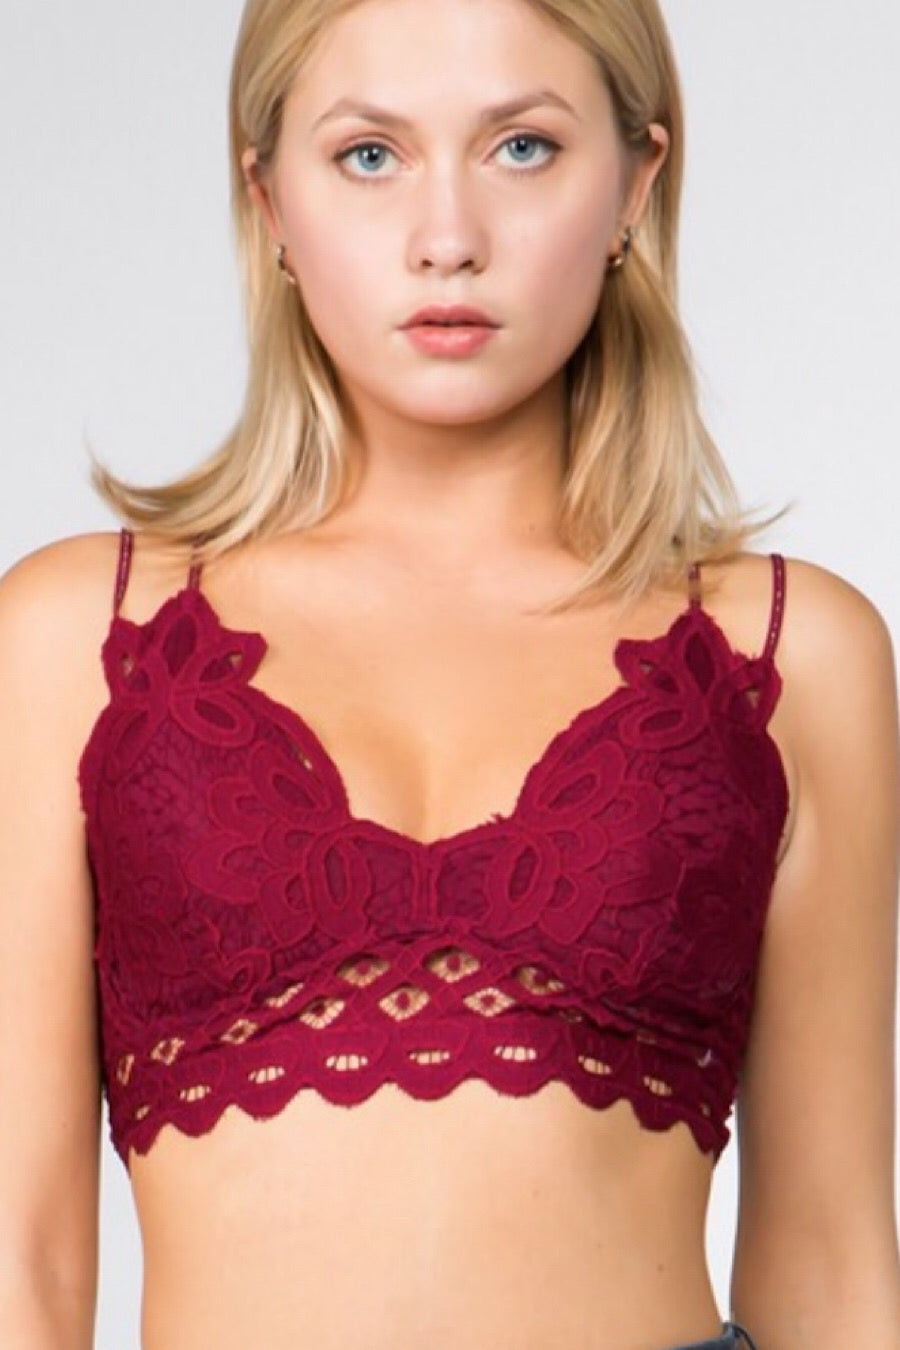 Lace Bralettes in Various Colors